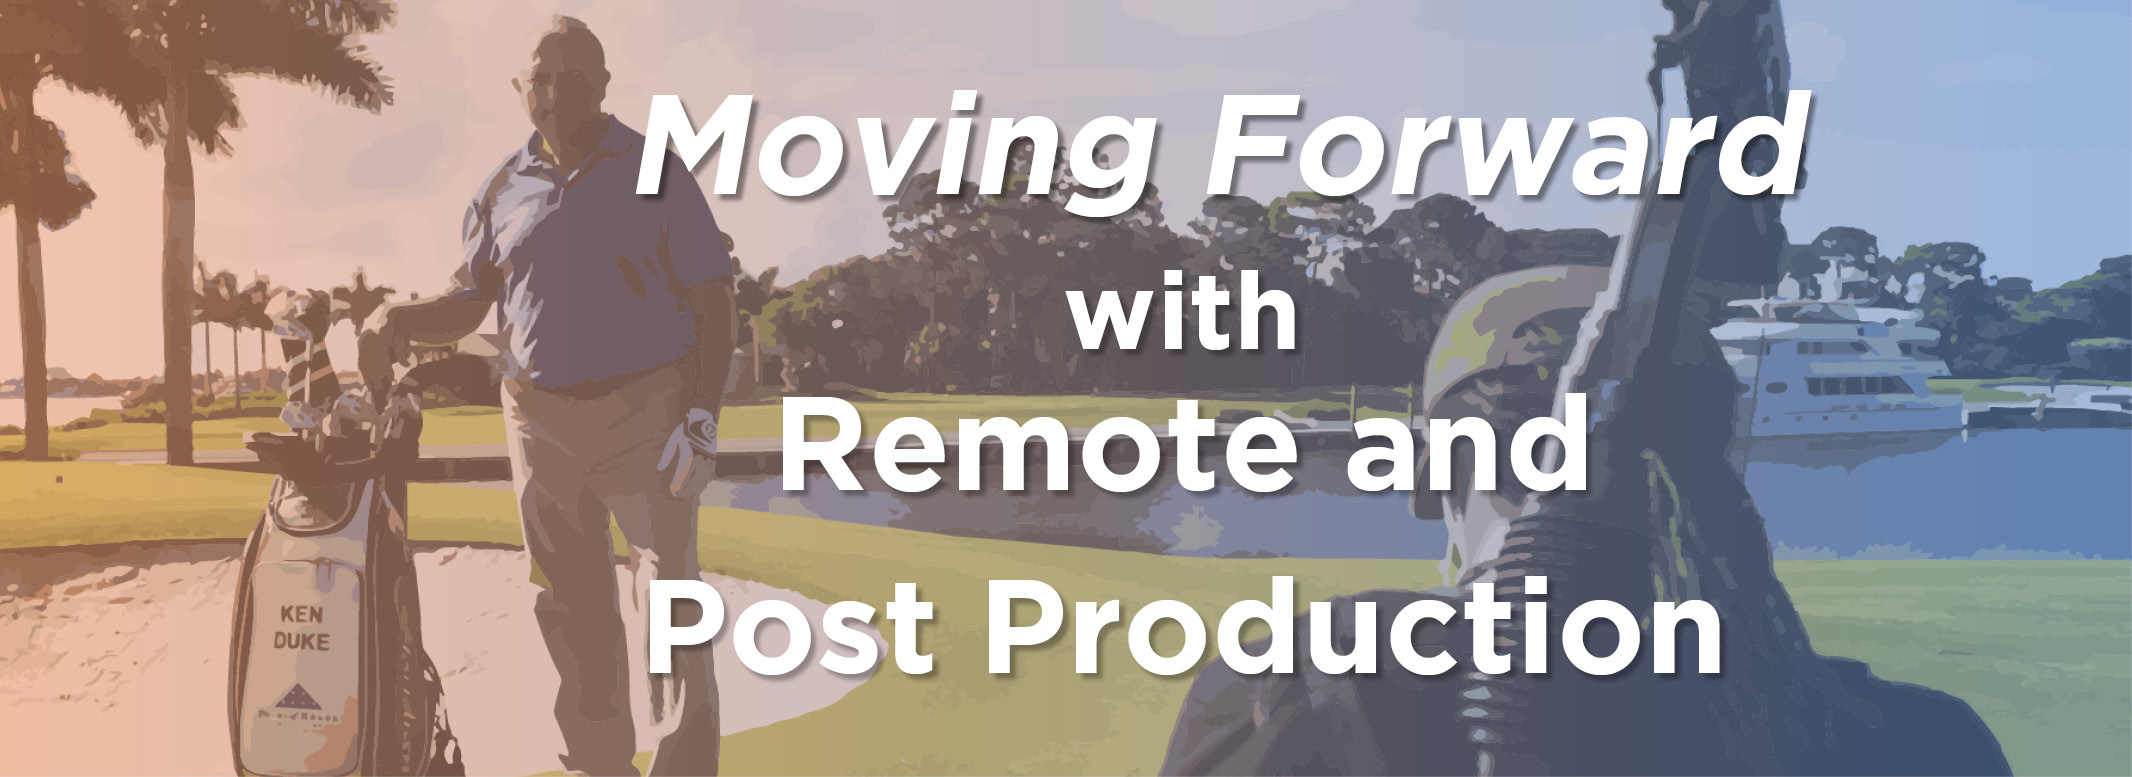 Moving Forward with Remote and Post Production